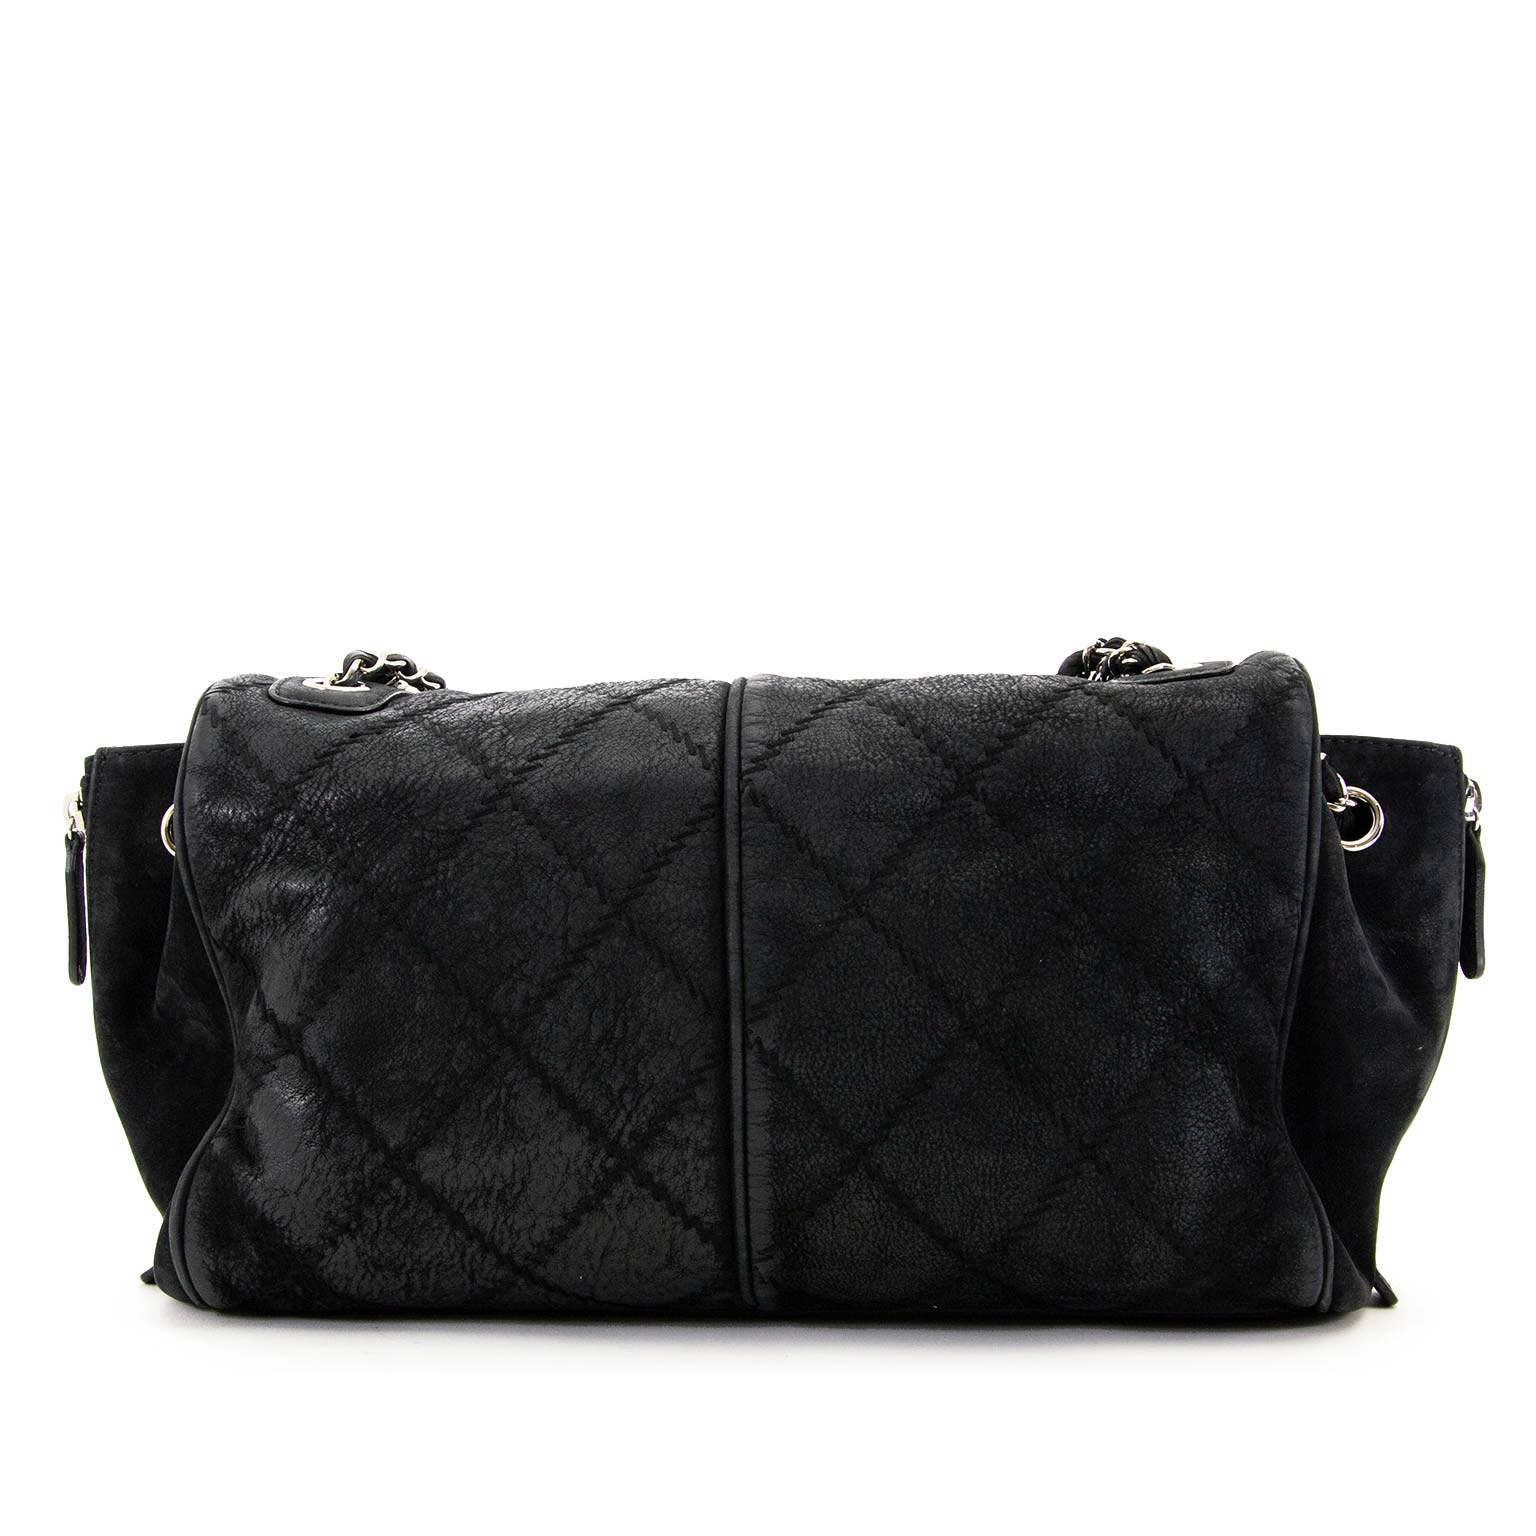 achetez Chanel Black Quilted Leather Ultimate Stitch Flap Bag chez labellov pour le meilleur prix